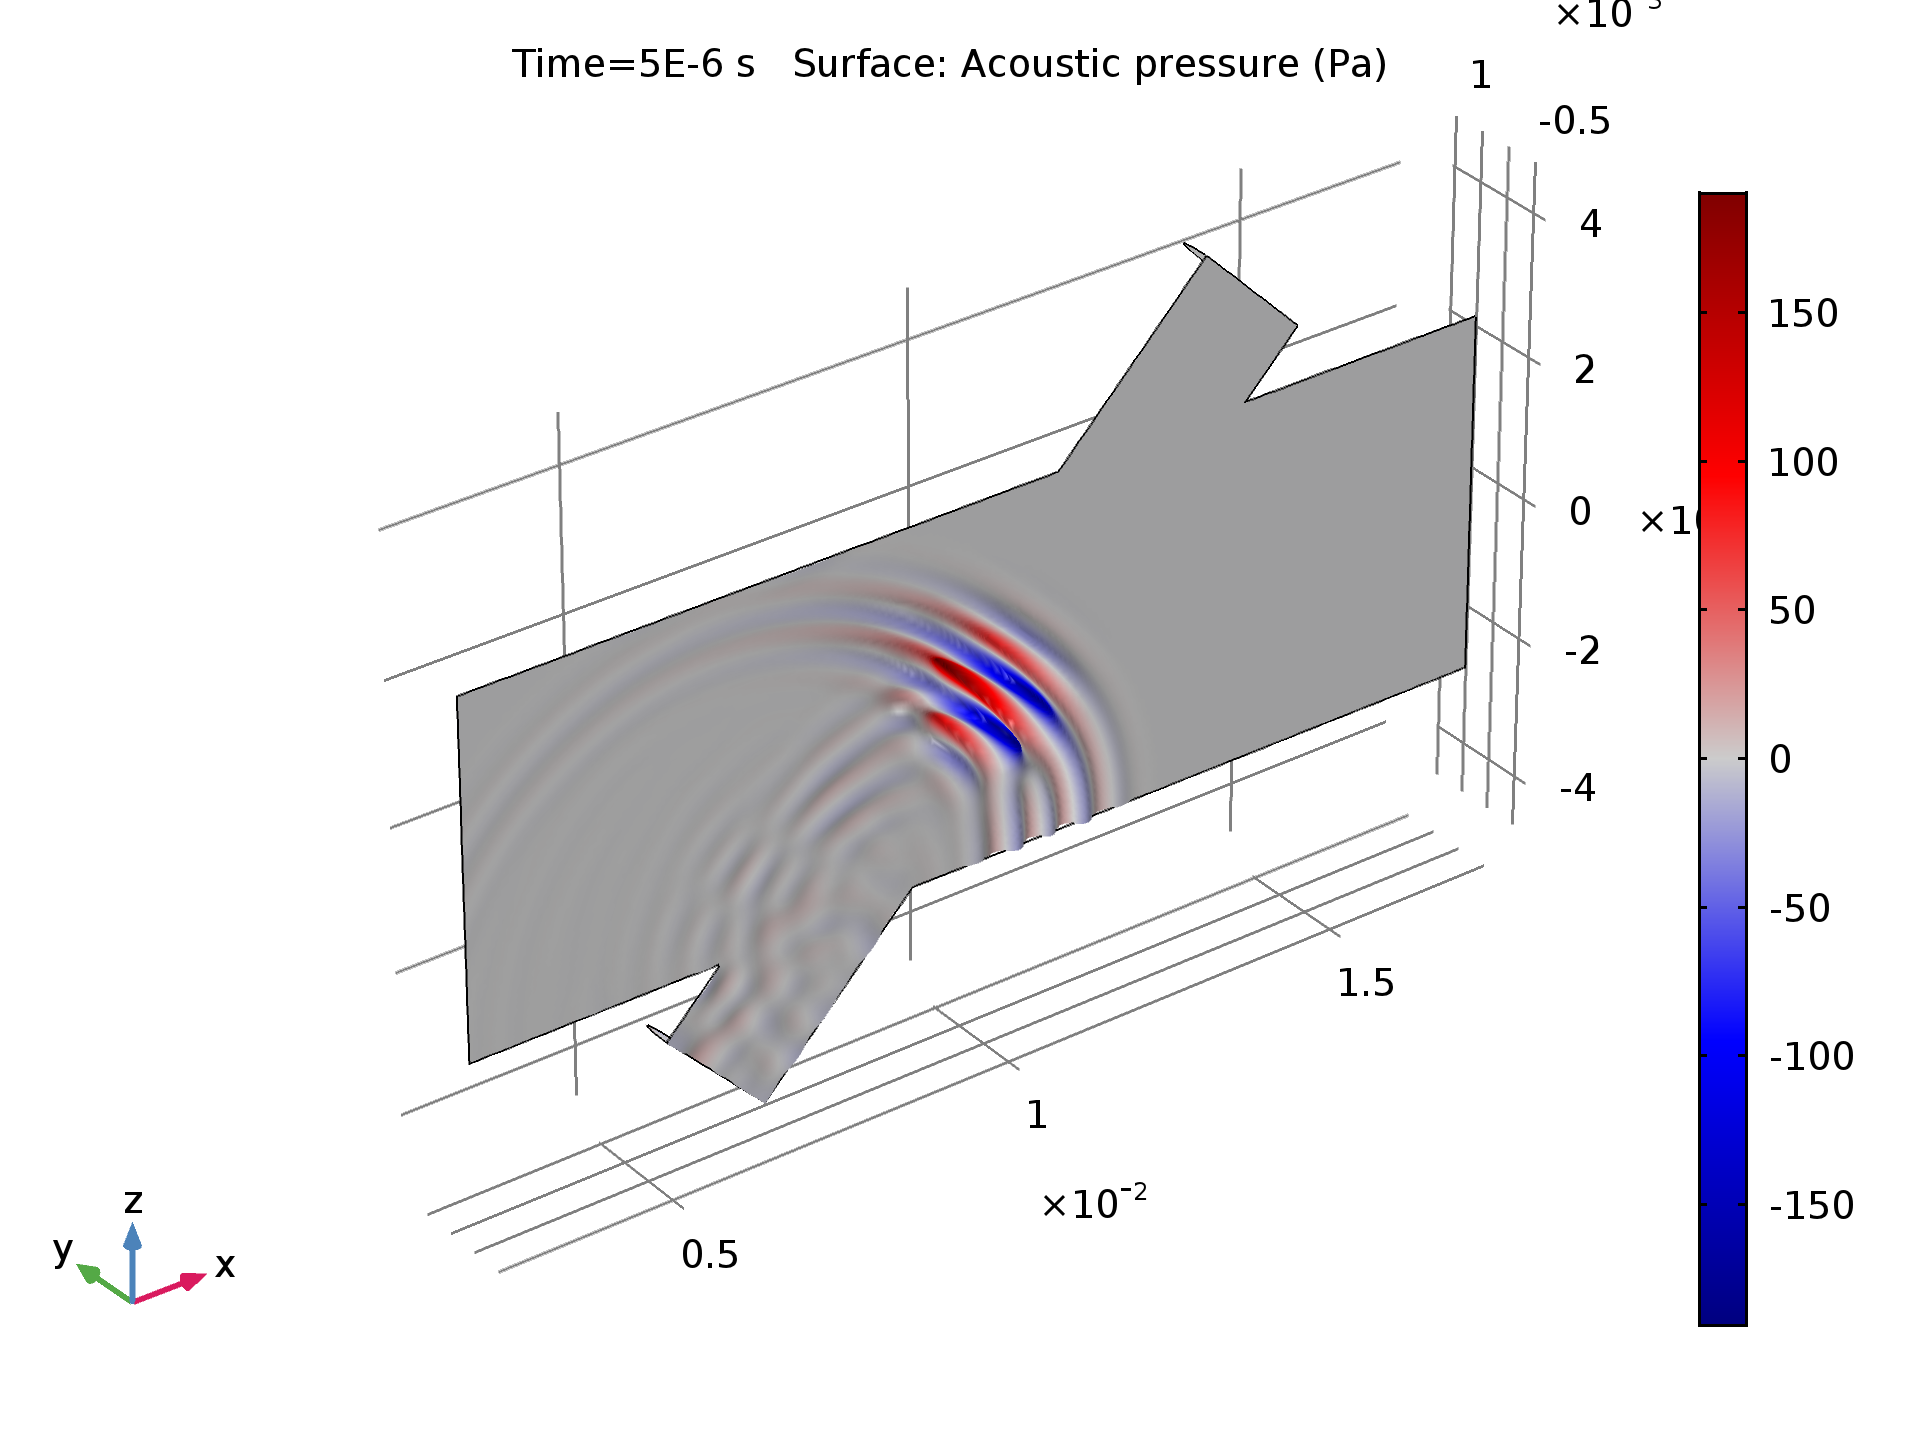 Pressure distribution of the transmitted signal, depicted in the symmetry plane of the flow meter, at time t = 5 ms.